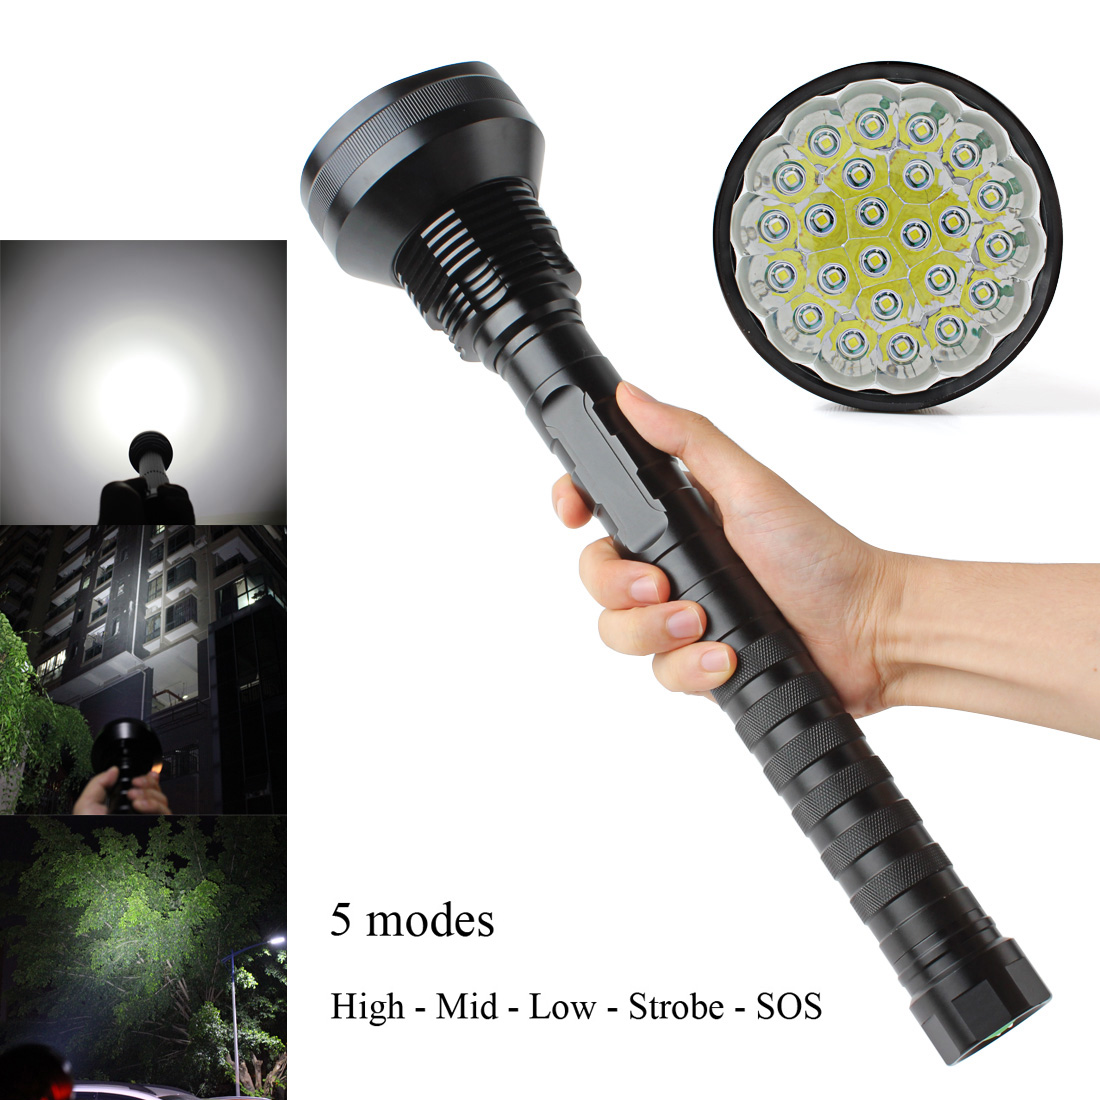 LED Flashlight NEW CREE XML-T6 21/24 LED 32000 LM High Power Glare T6 LED Torch Floodlight Accent Light Camping Lamp anjoet 28 x t6 led 40000 lumens high power 5 modes glare flashlight torch working lamp floodlight accent light camping lantern